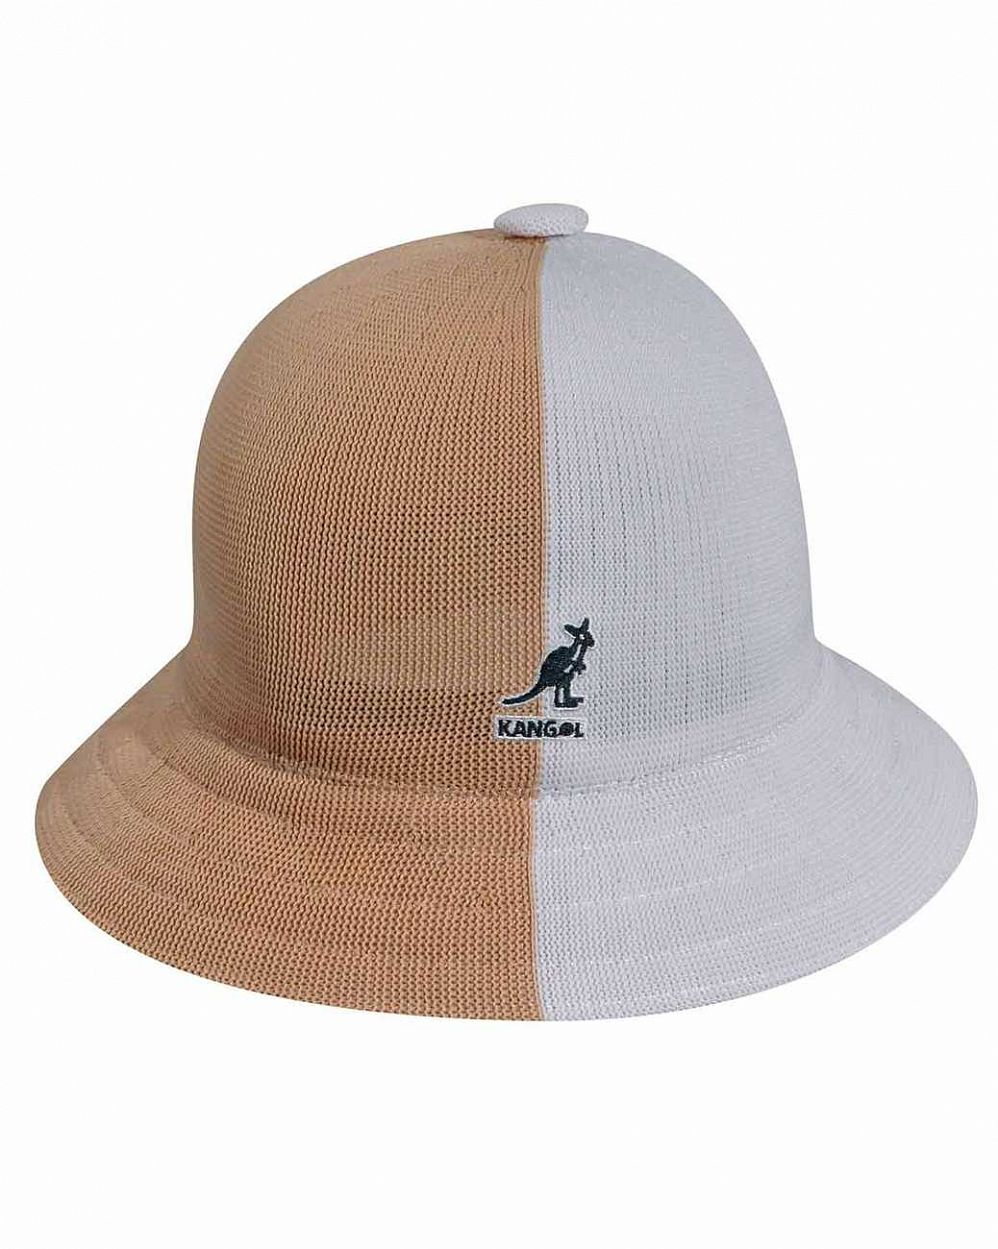 Панама Kangol Colour Block Casual White Nu отзывы